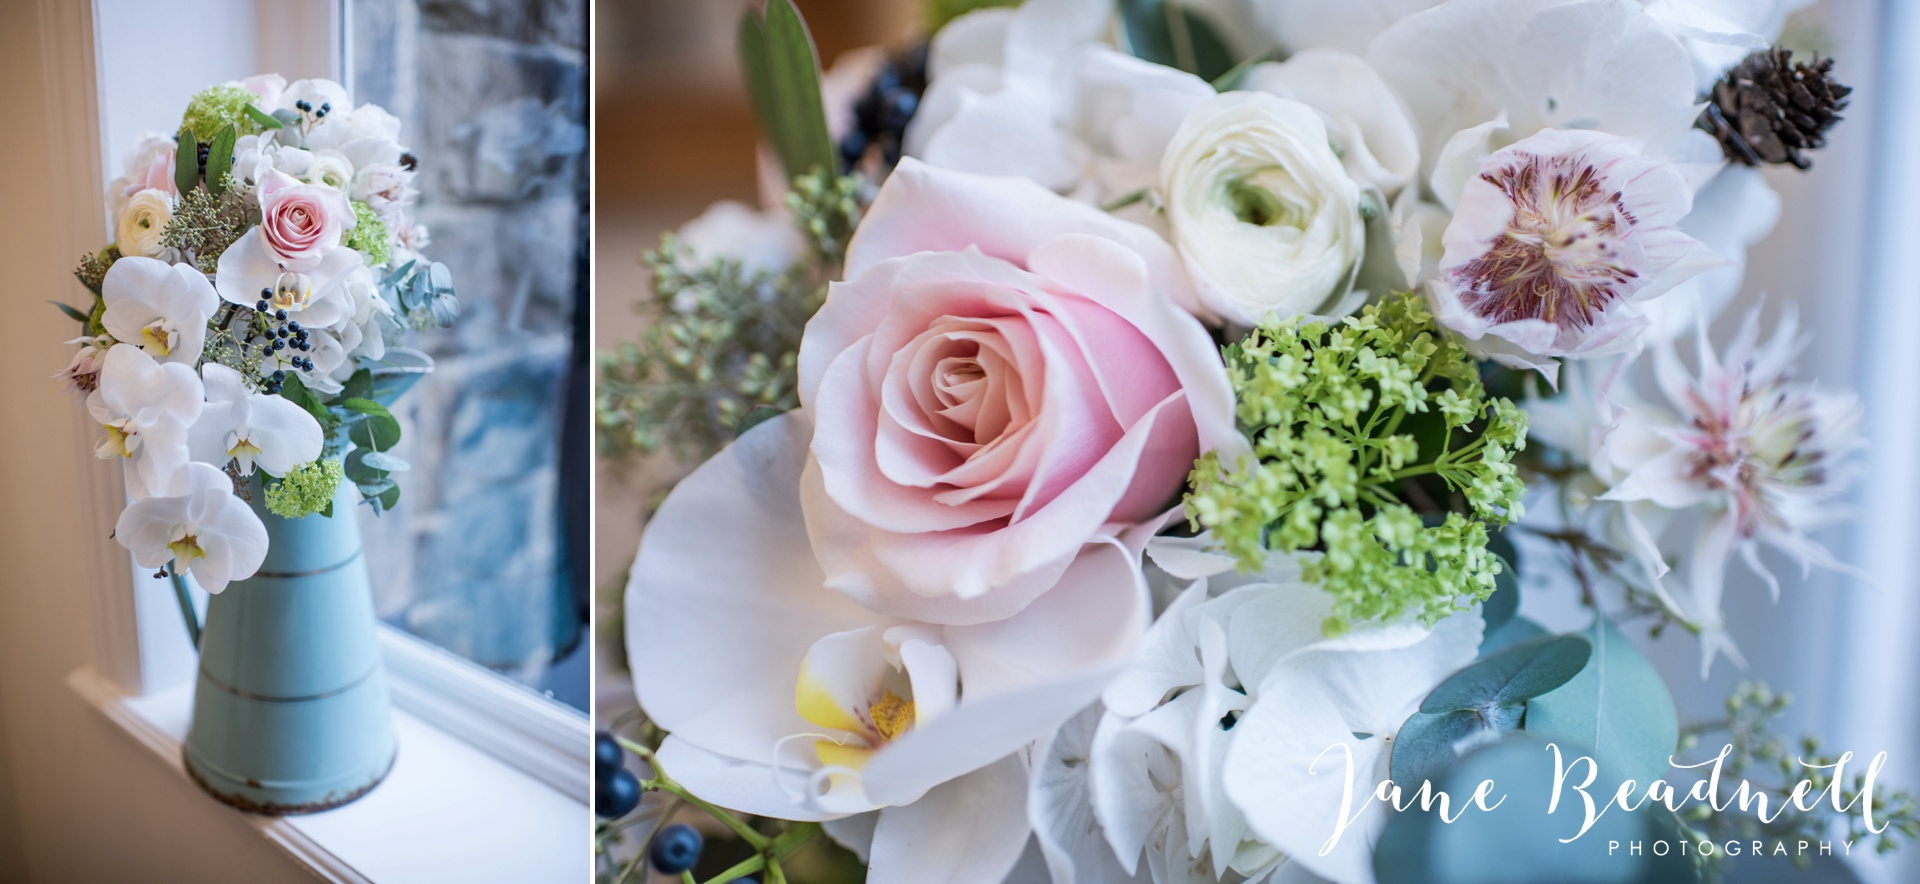 Leafy couture wedding flowers wedding photography by Jane Beadnell photography_0011